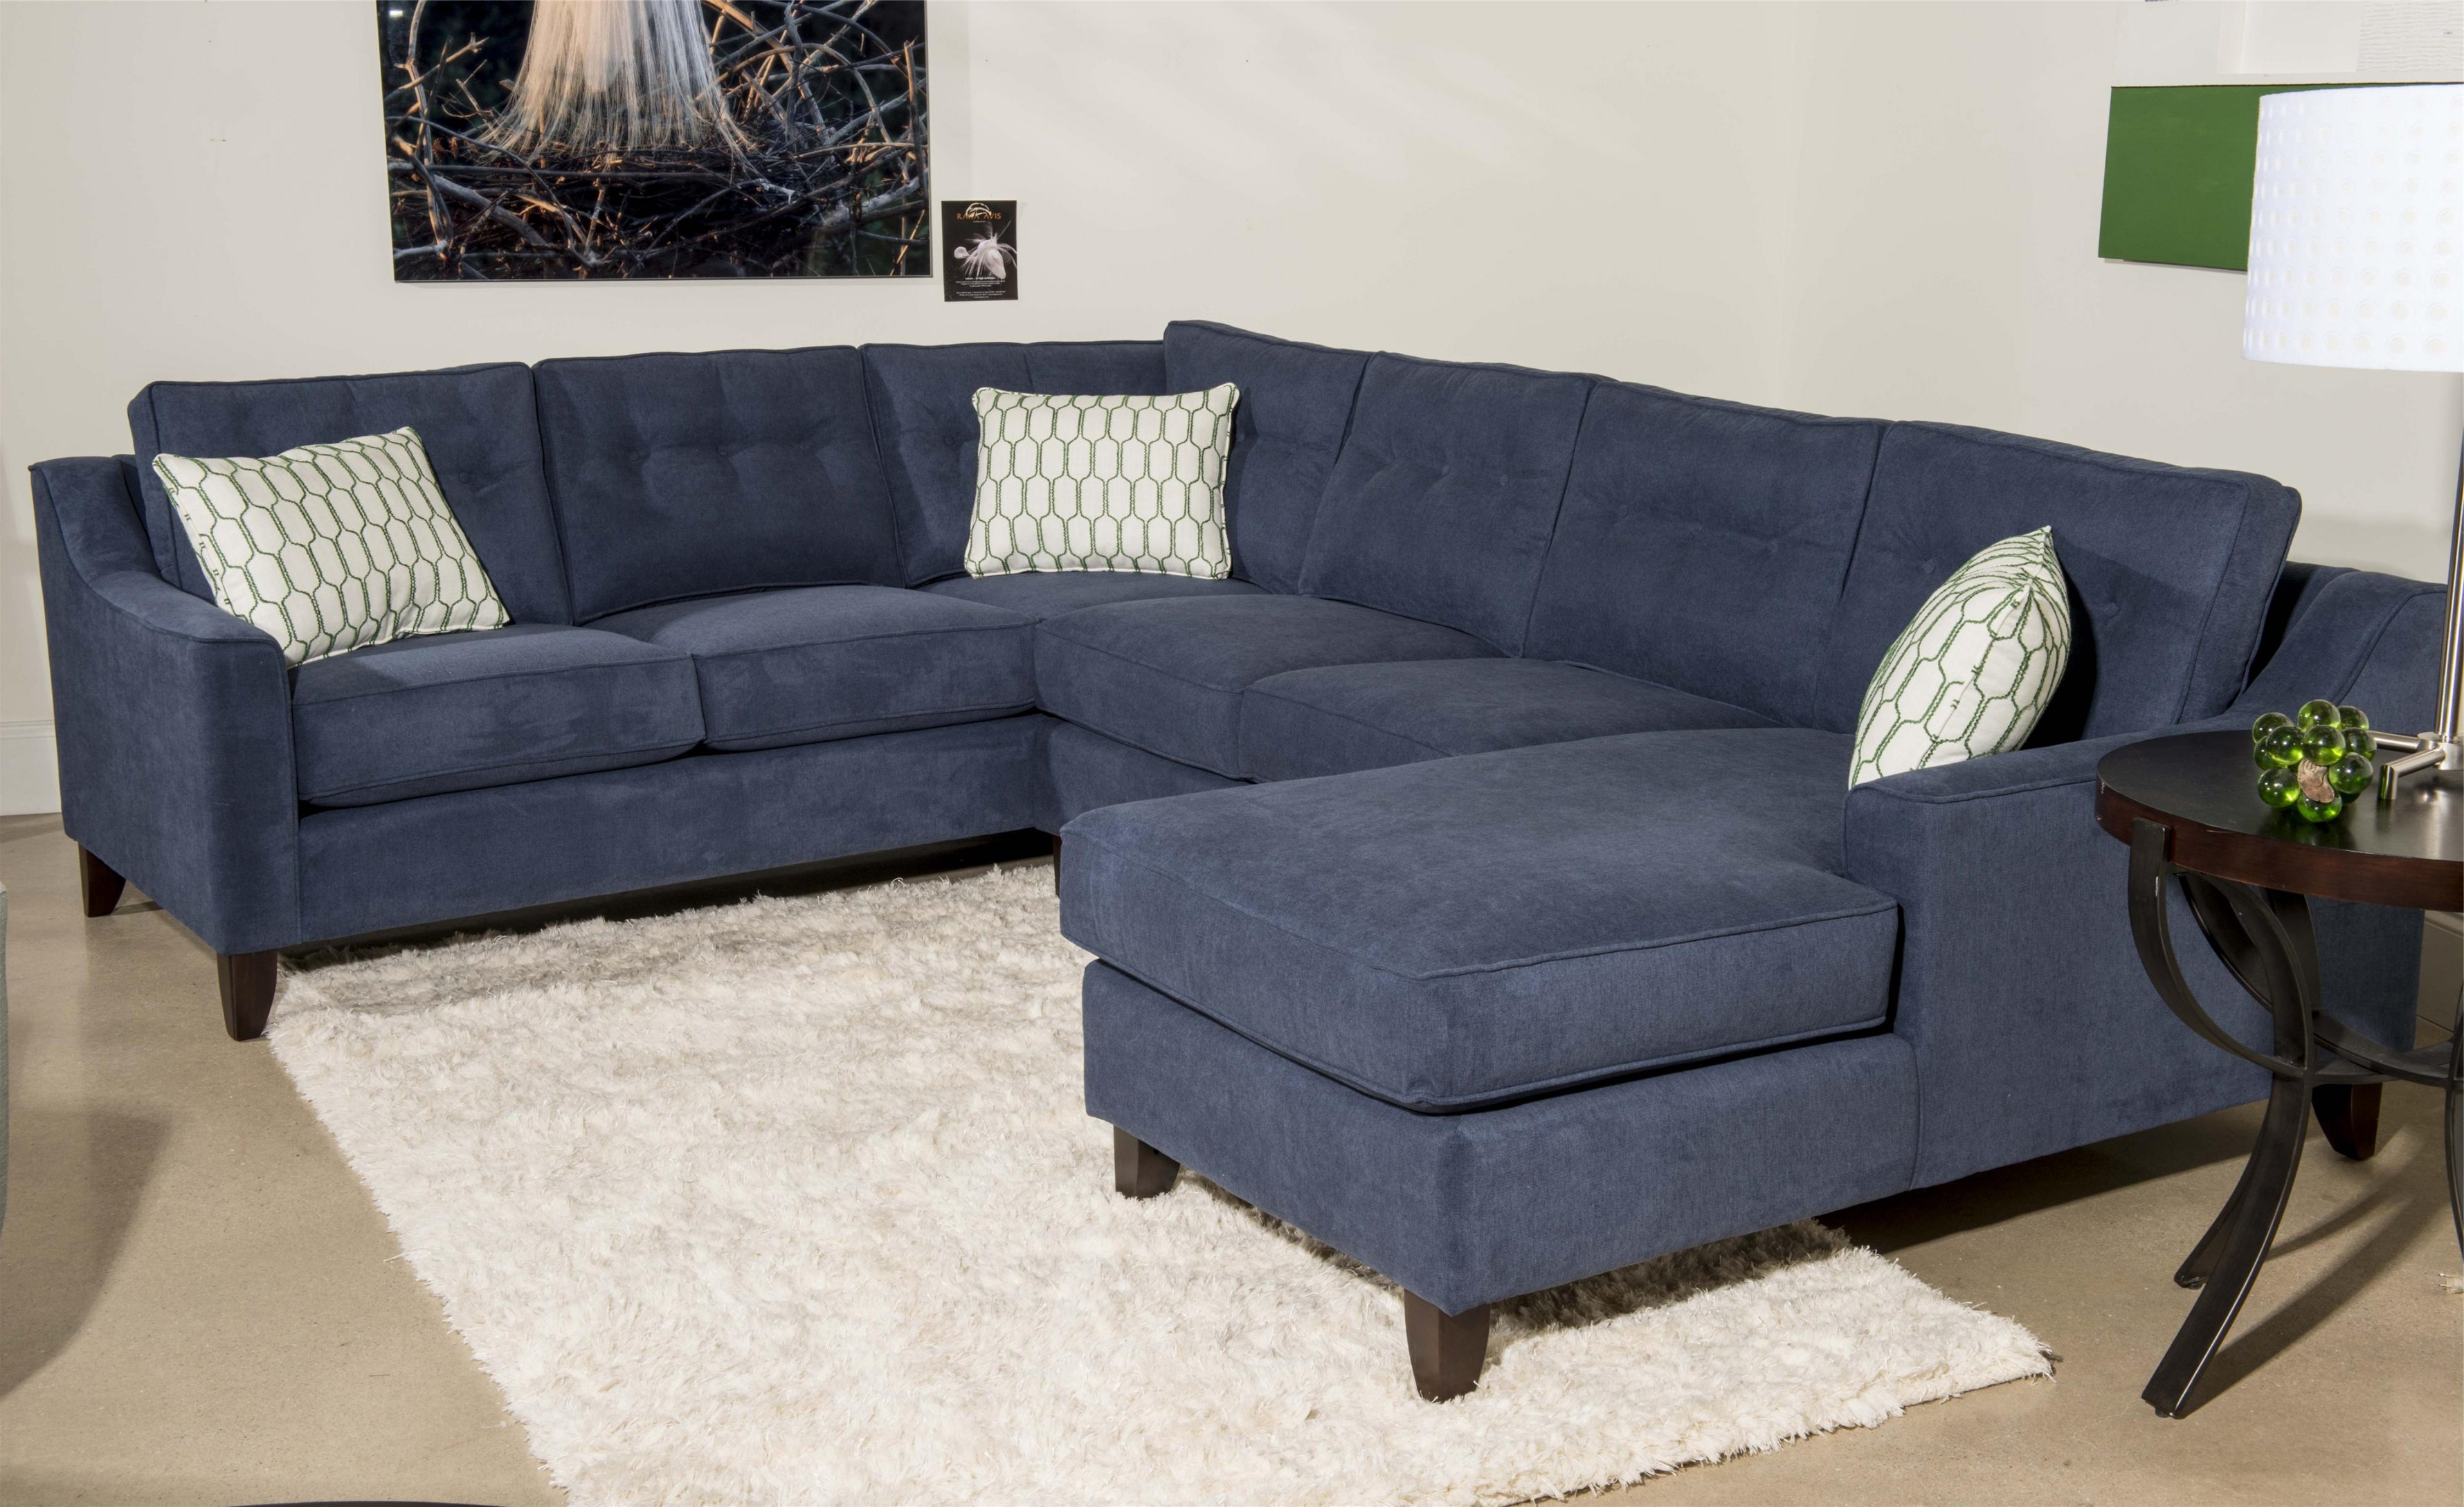 Preferred Meyer 3 Piece Sectionals With Laf Chaise Intended For 3 Chaise Sectional (View 19 of 20)